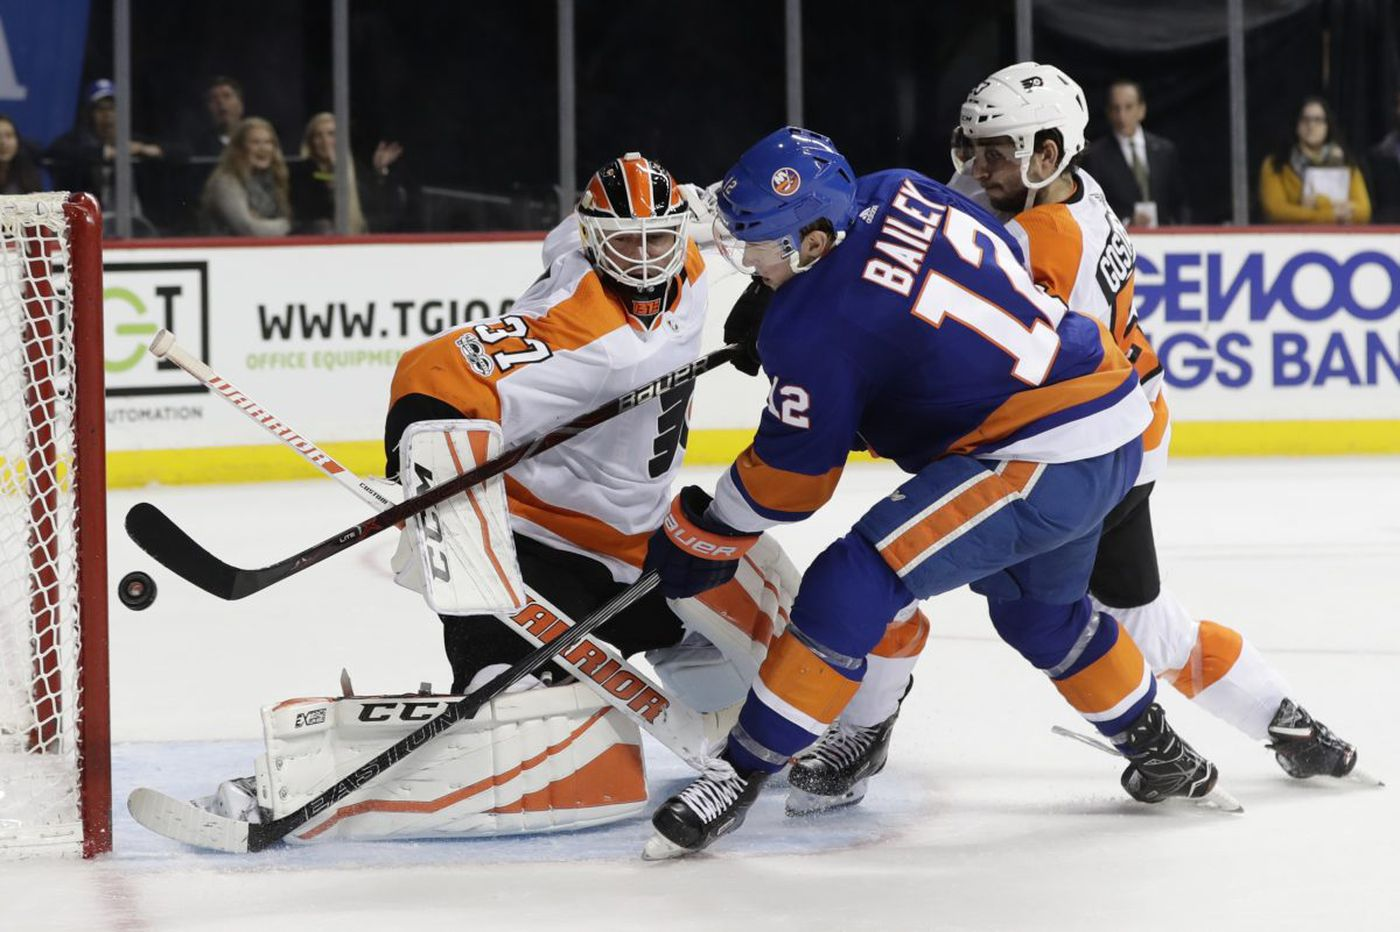 Observations from the Flyers' 4-3 overtime loss to the Islanders